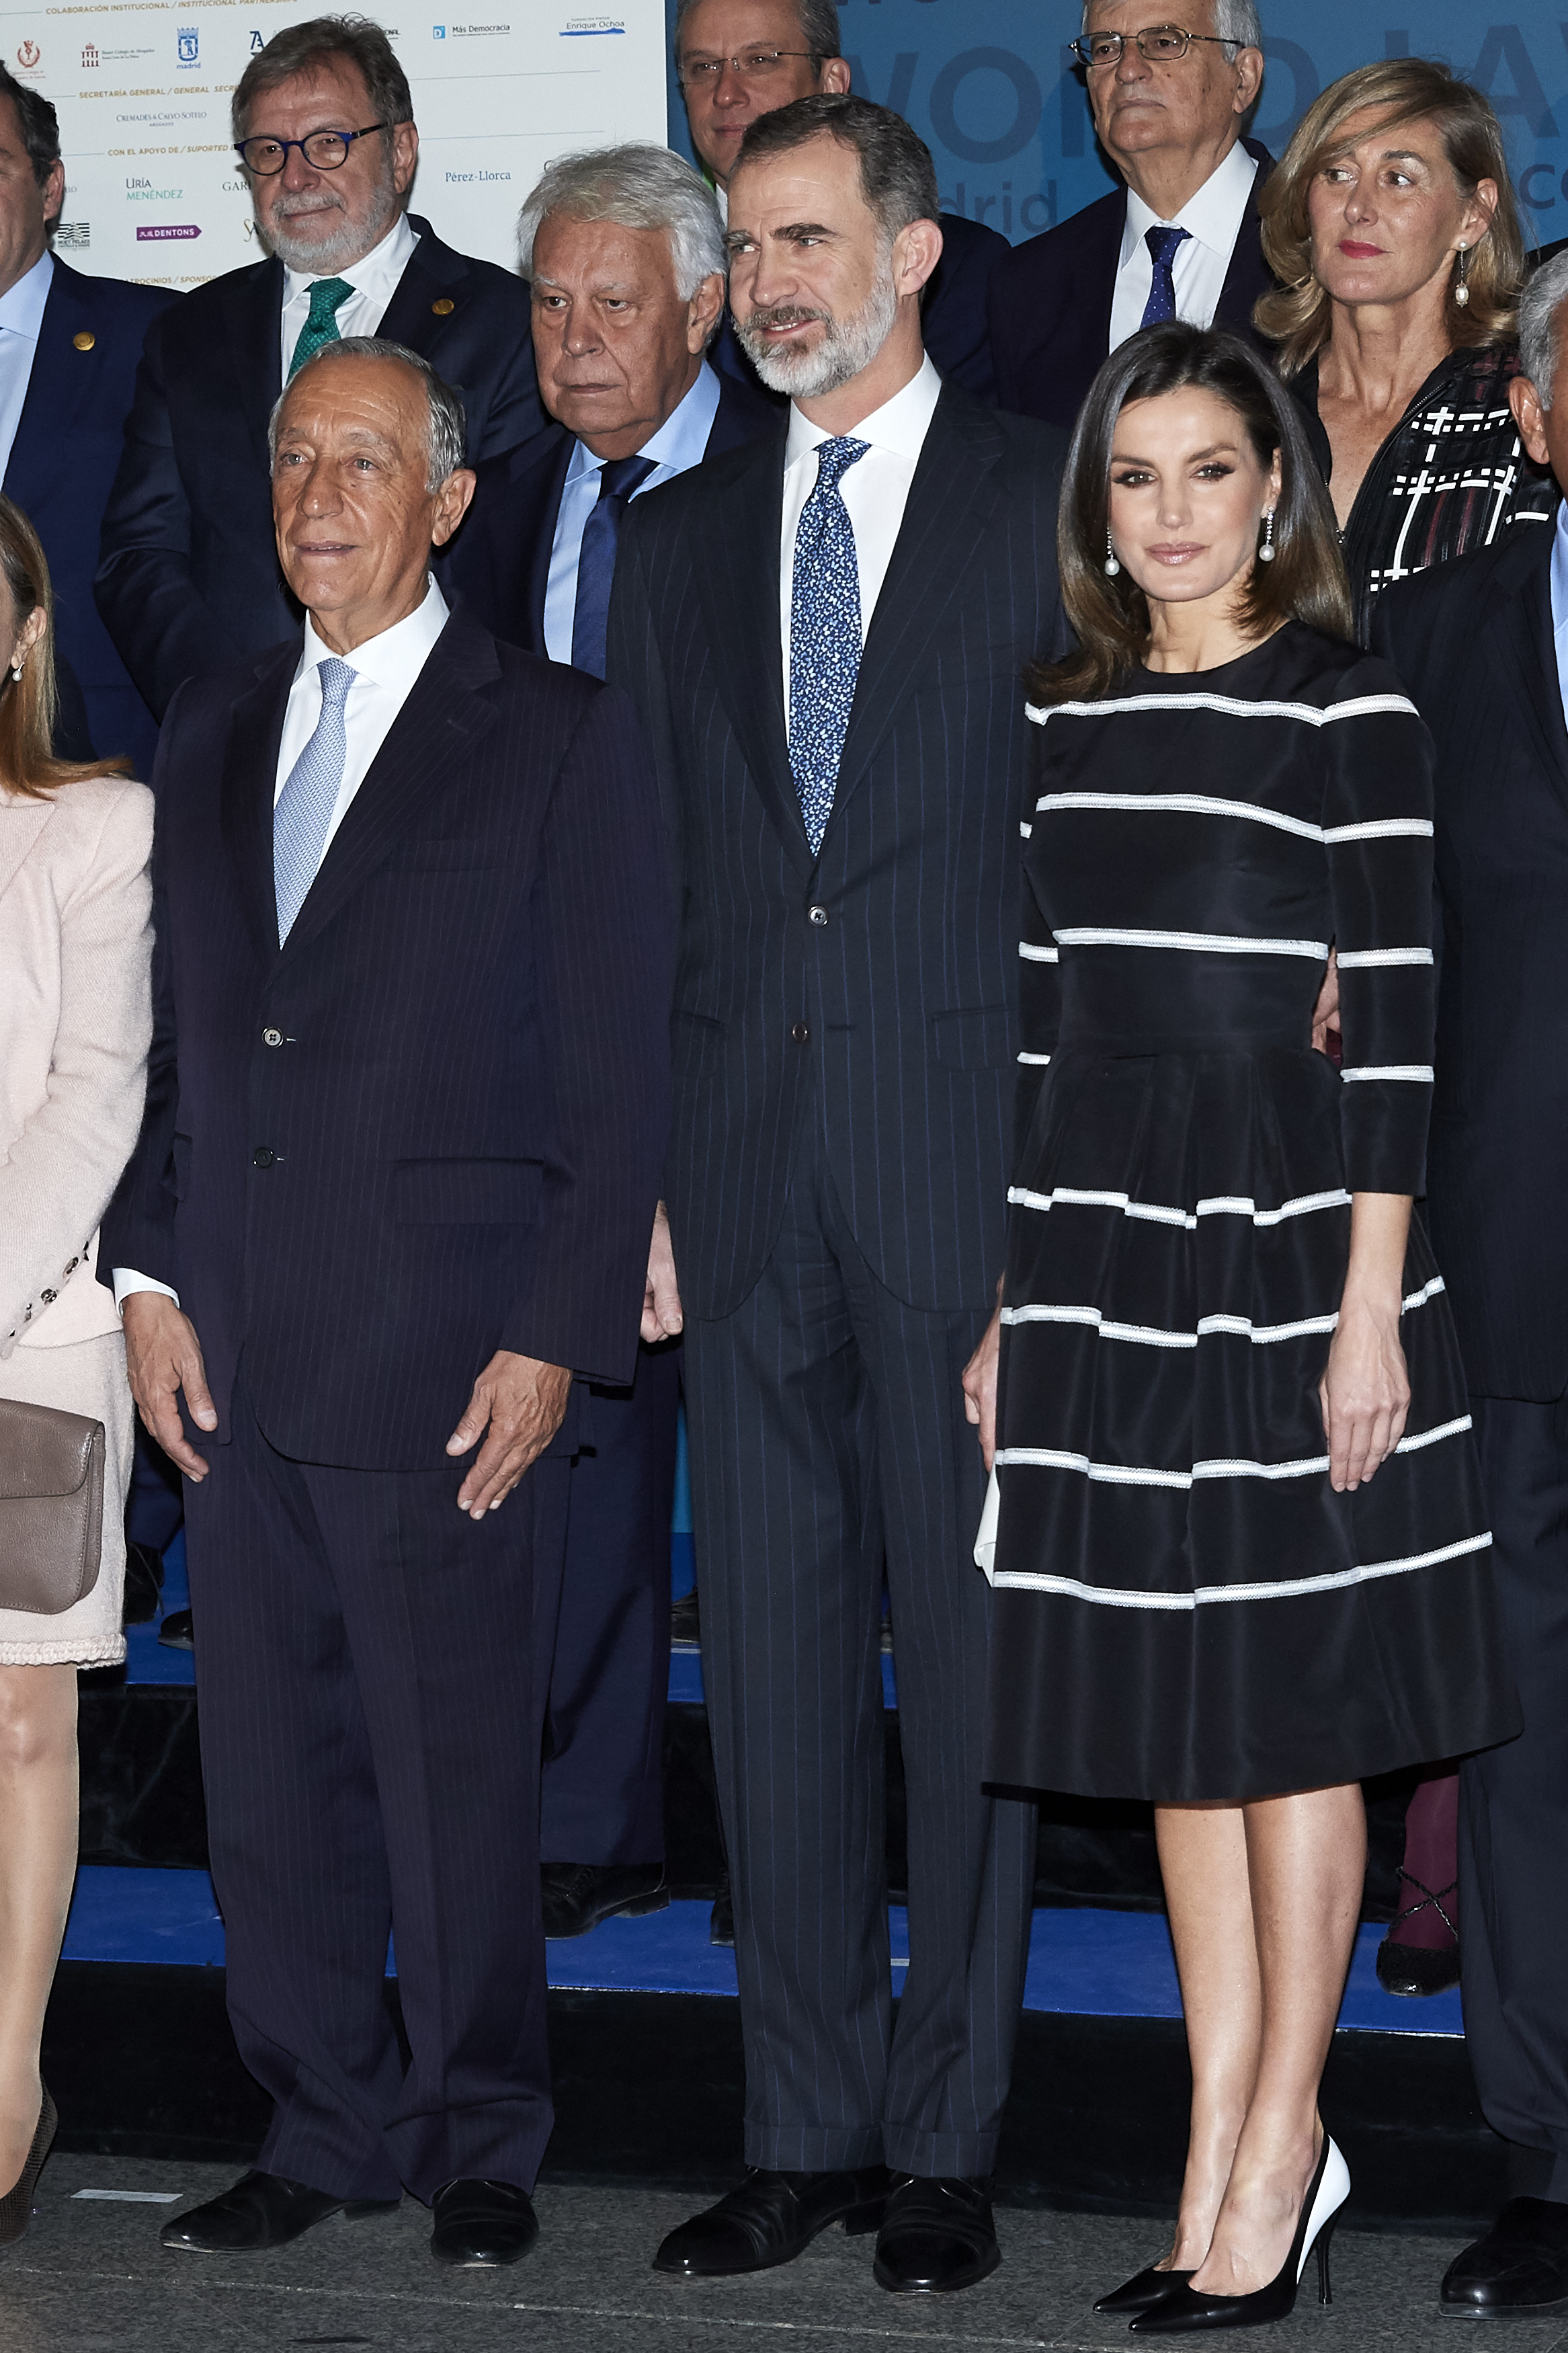 Spanish Royals Attend Closure Of 'World Law Congress' In Madrid